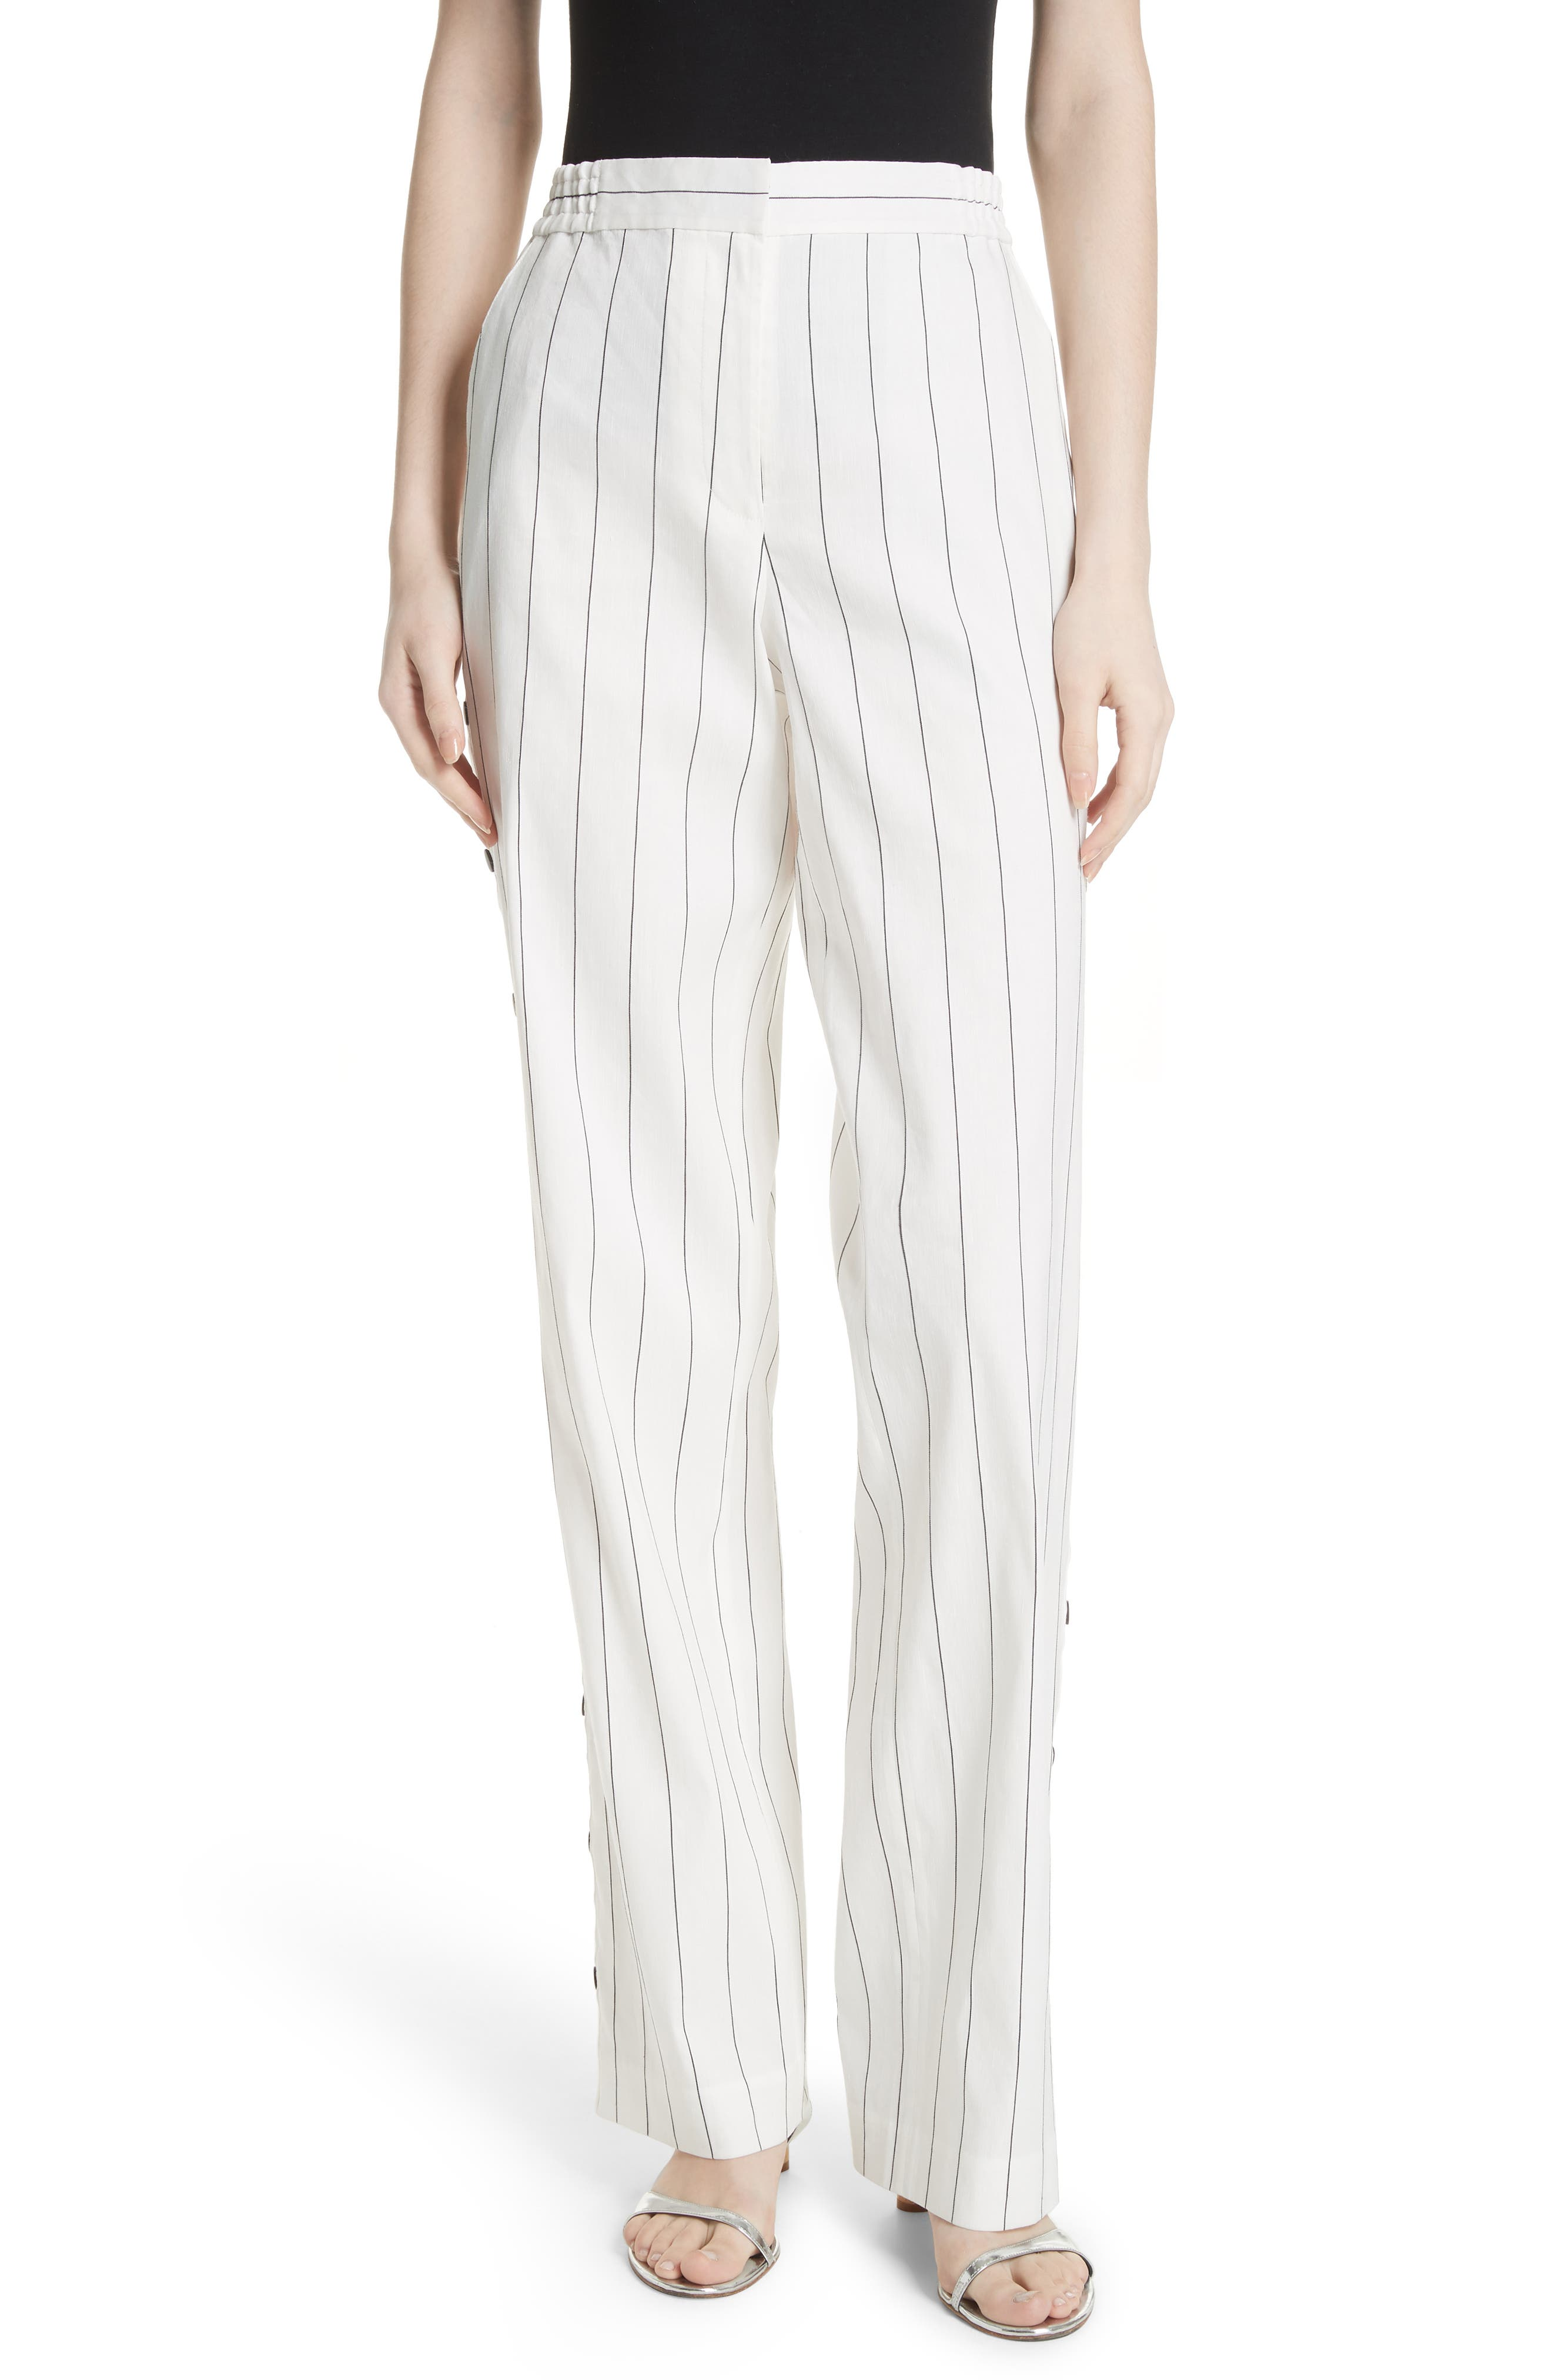 Snap Side Stripe Pants,                         Main,                         color, Ivory Multi